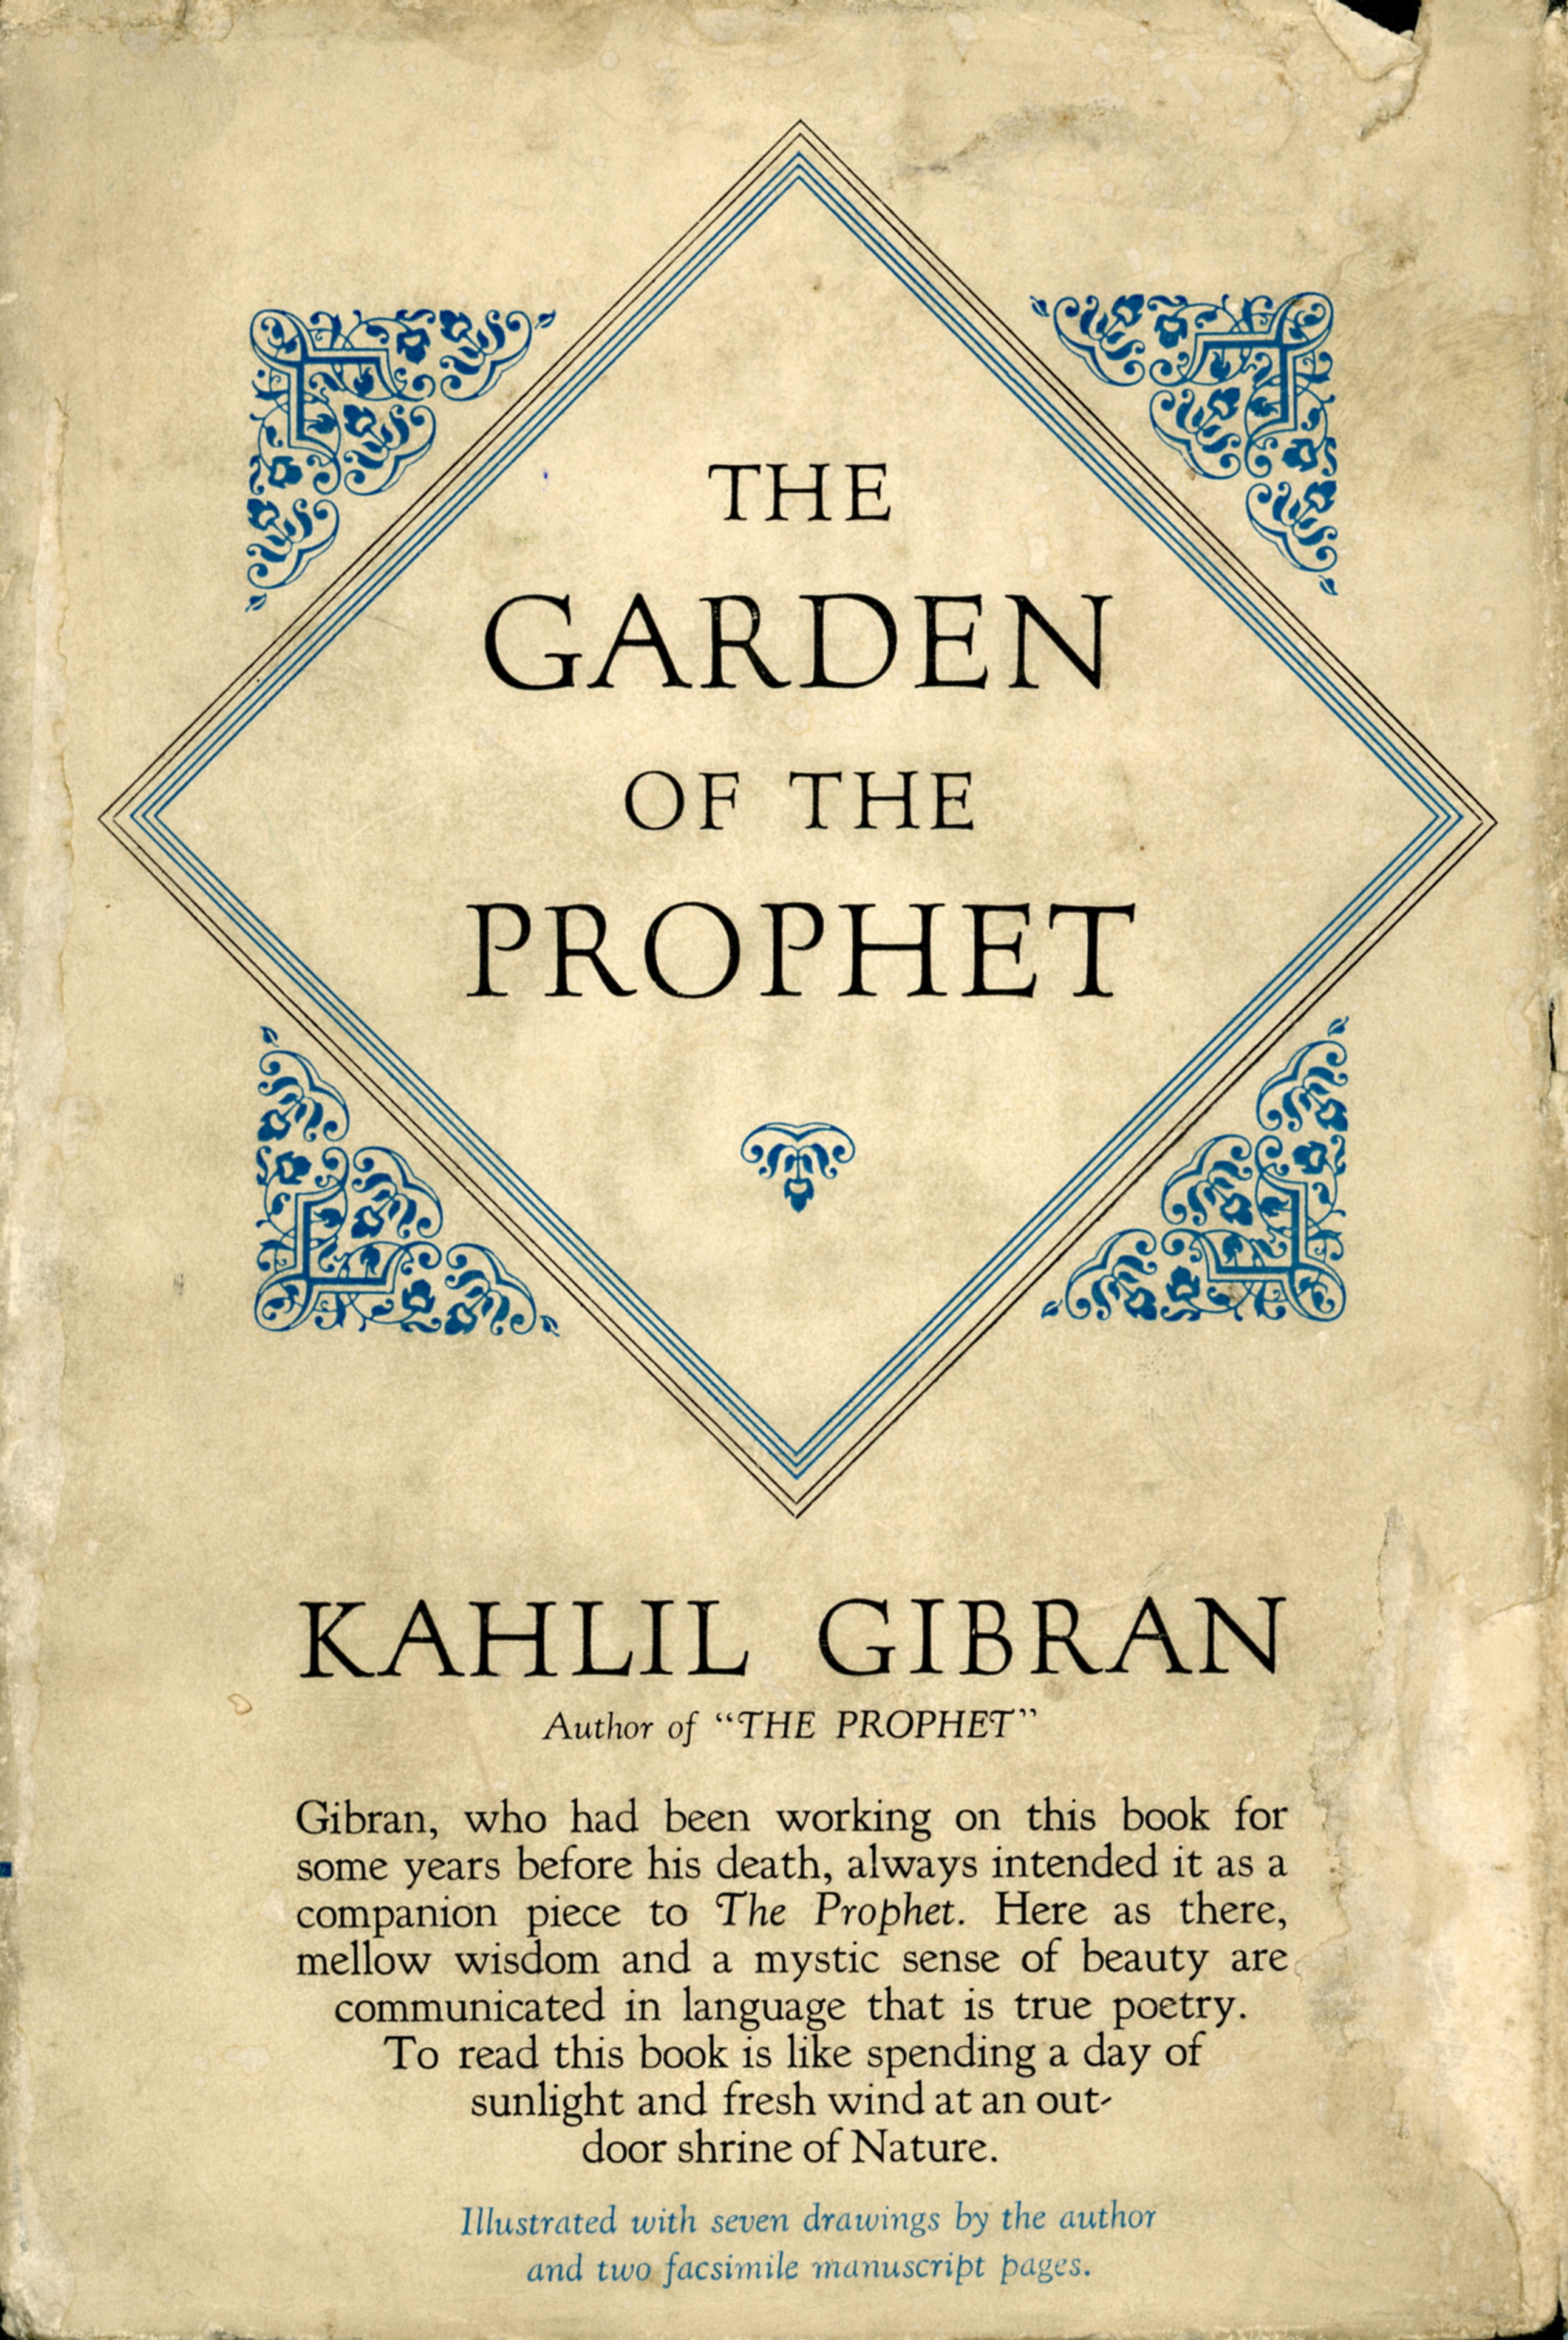 K. Gibran, The Garden of the Prophet, New York: Knopf, 1933.